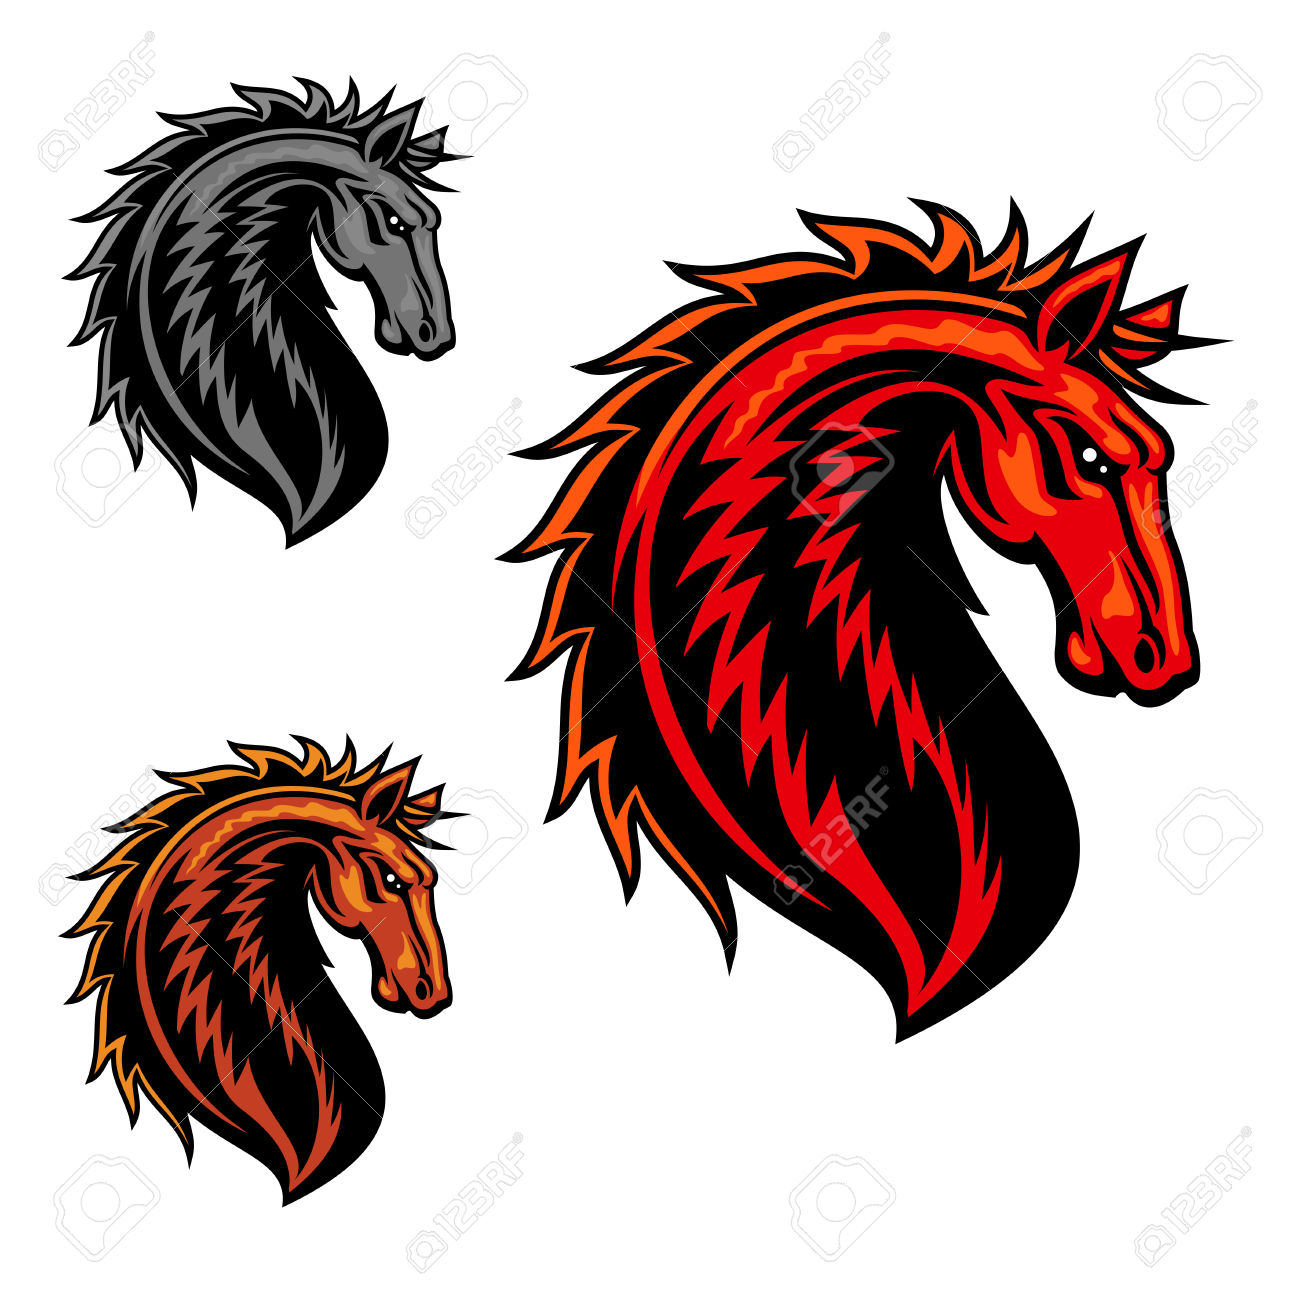 Wild Mustang Horse Mascot With Fiery Red Spiky Mane And Curved.